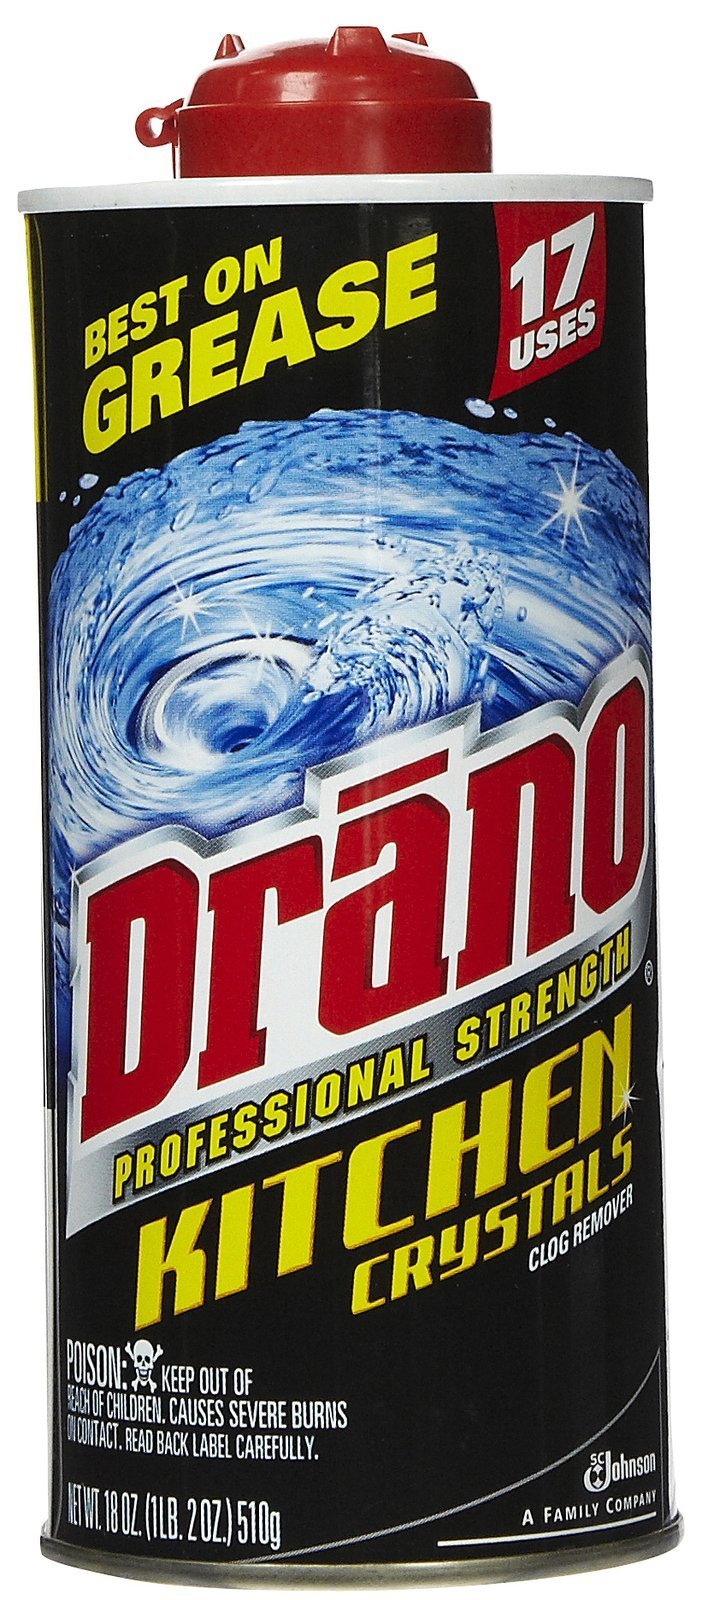 Drano Professional Strength Kitchen Crystals Clog Remover, 18 Oz by Drano